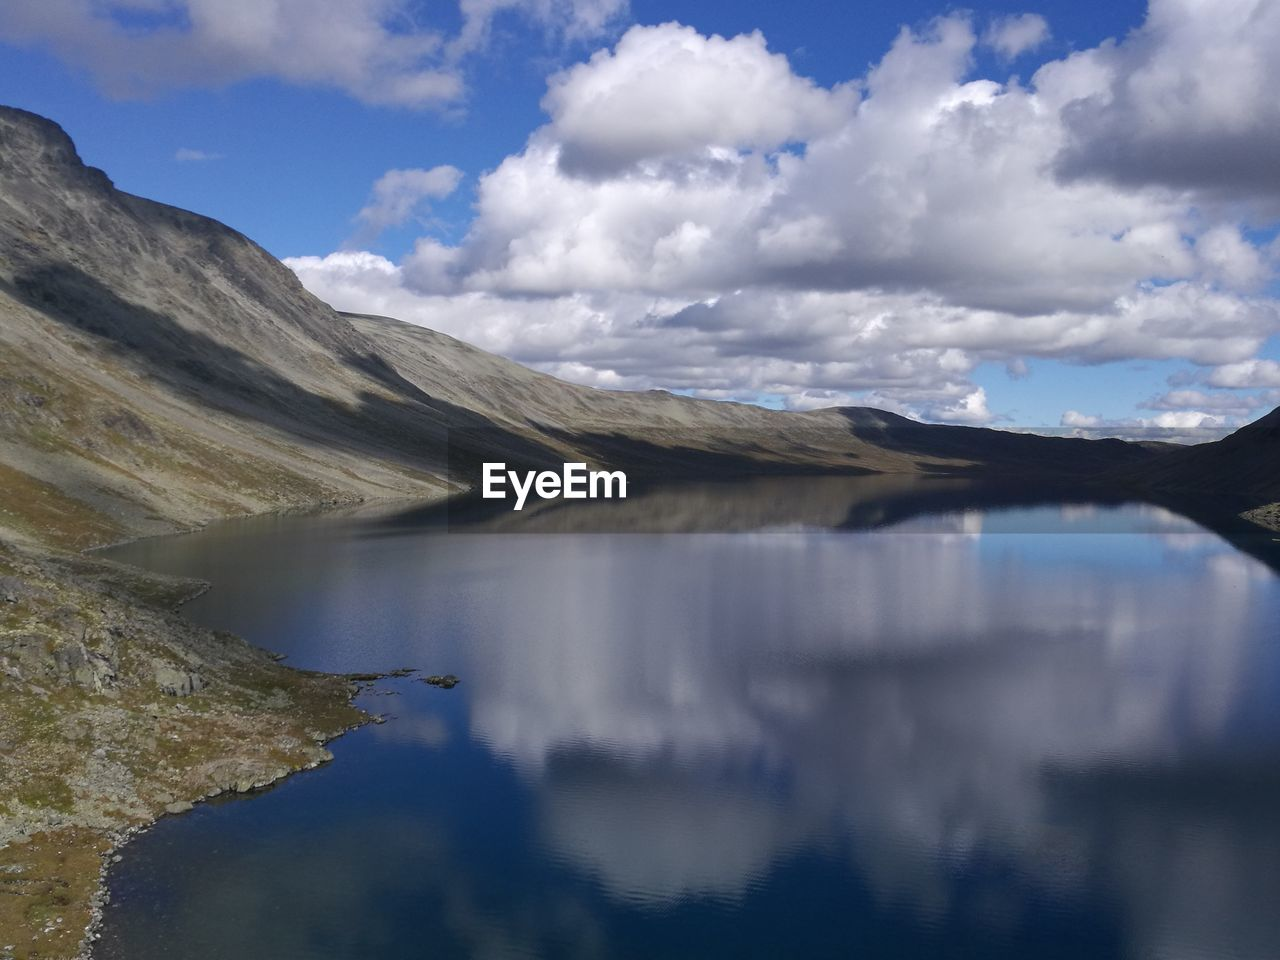 Scenic Shot Of Reflection Of Clouds In Calm Lake